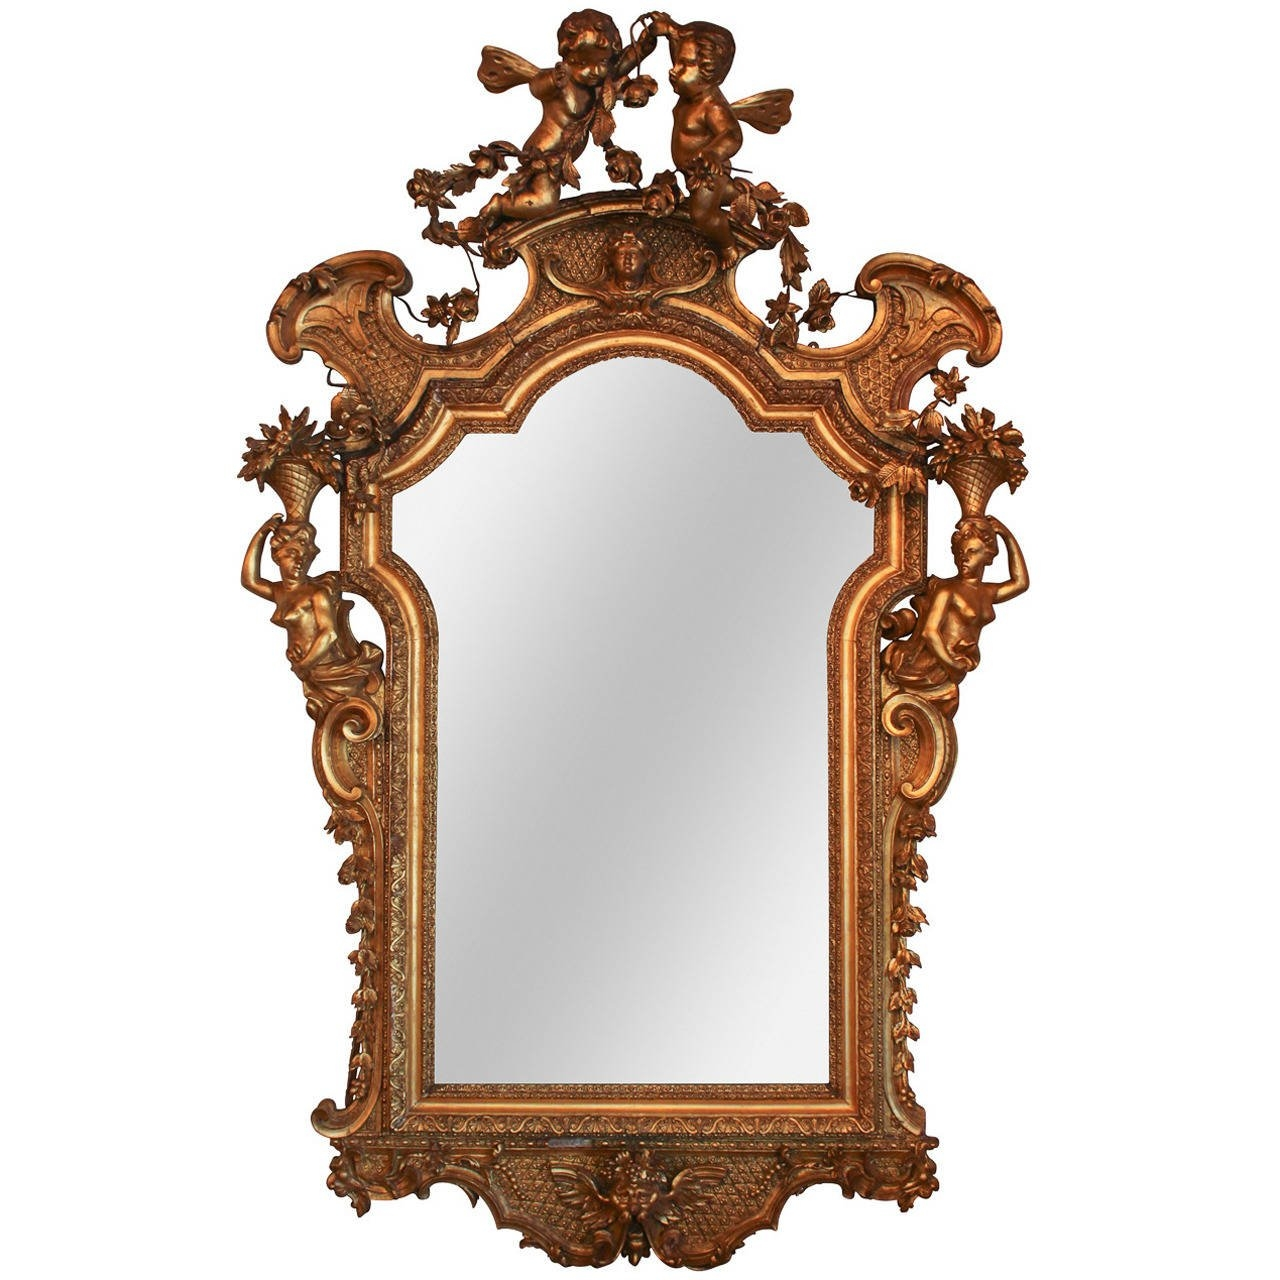 Rare 19th C French Rococo Giltwood Cherub Mirror For Sale At 1stdibs Regarding Rococo Gold Mirror (Image 13 of 15)